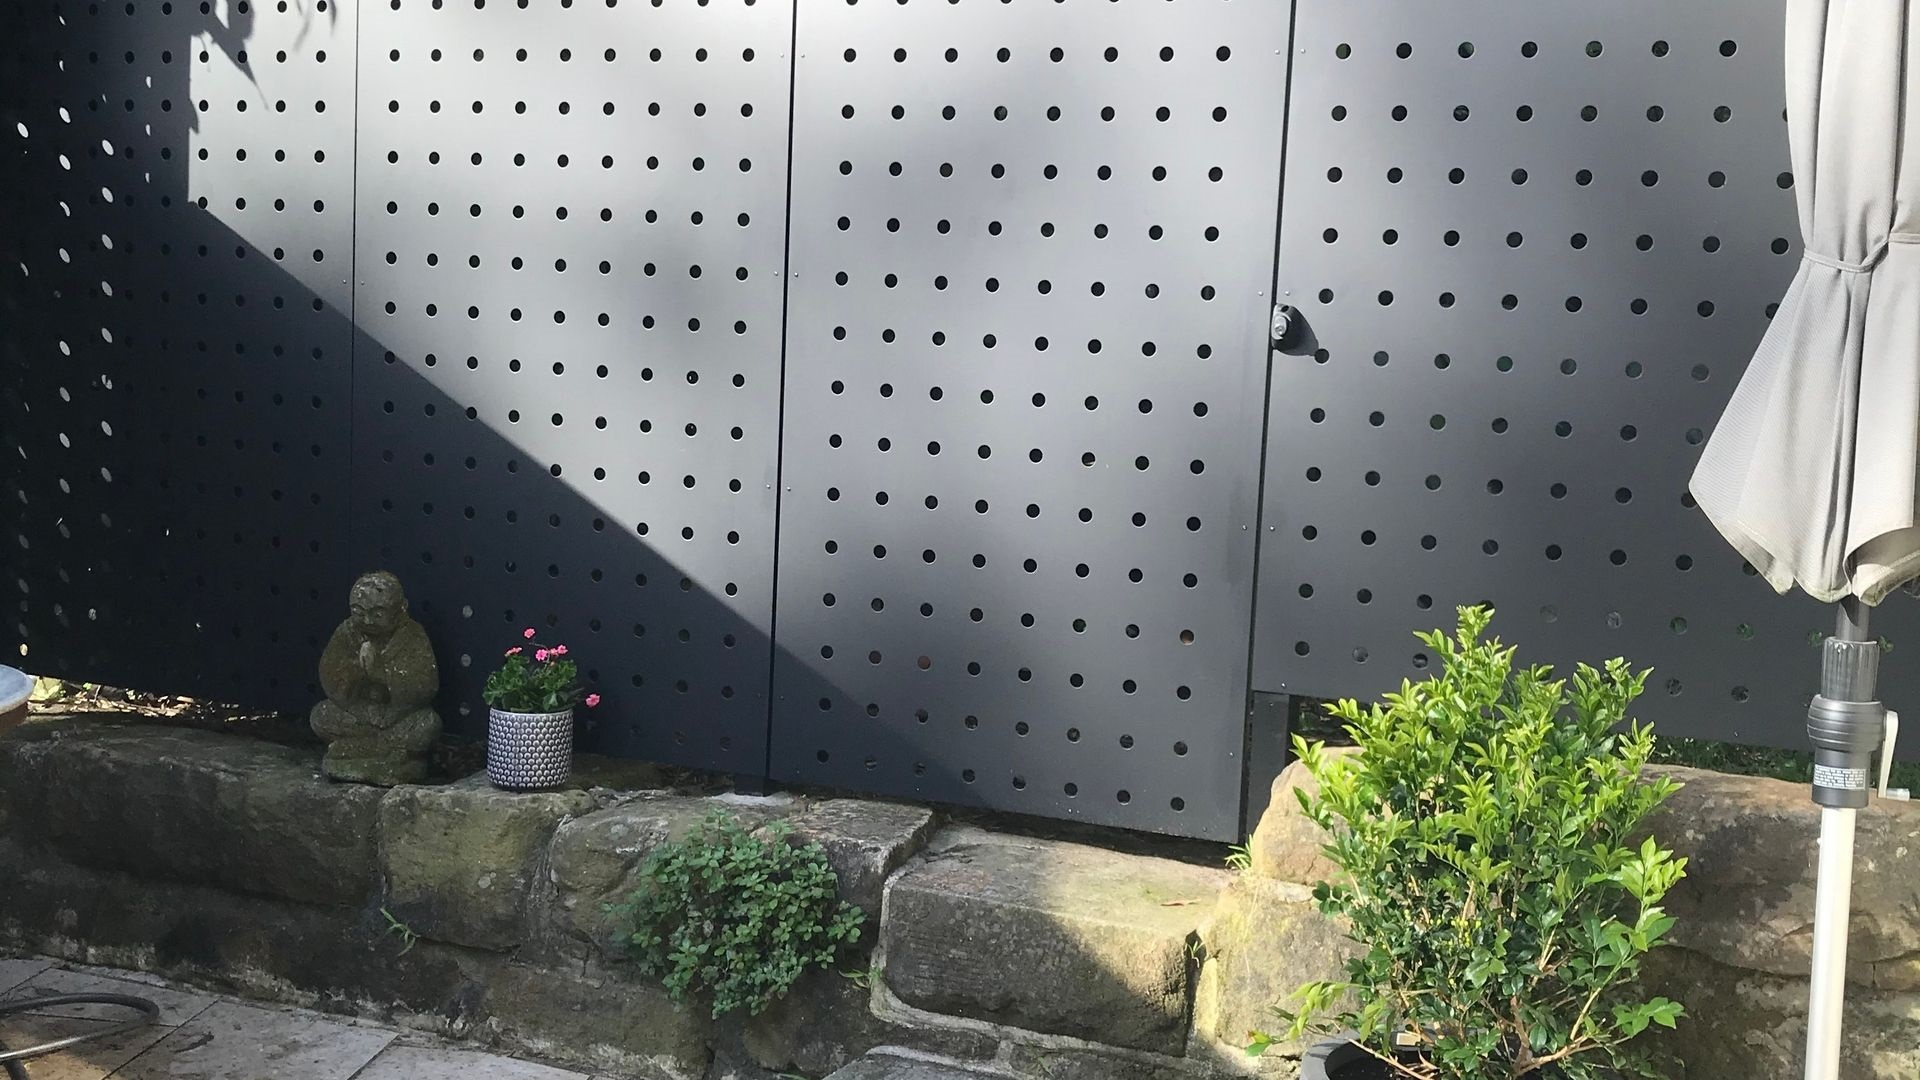 Bespoke perforated metal fence panels by Arrow Metal at a Sydney residence